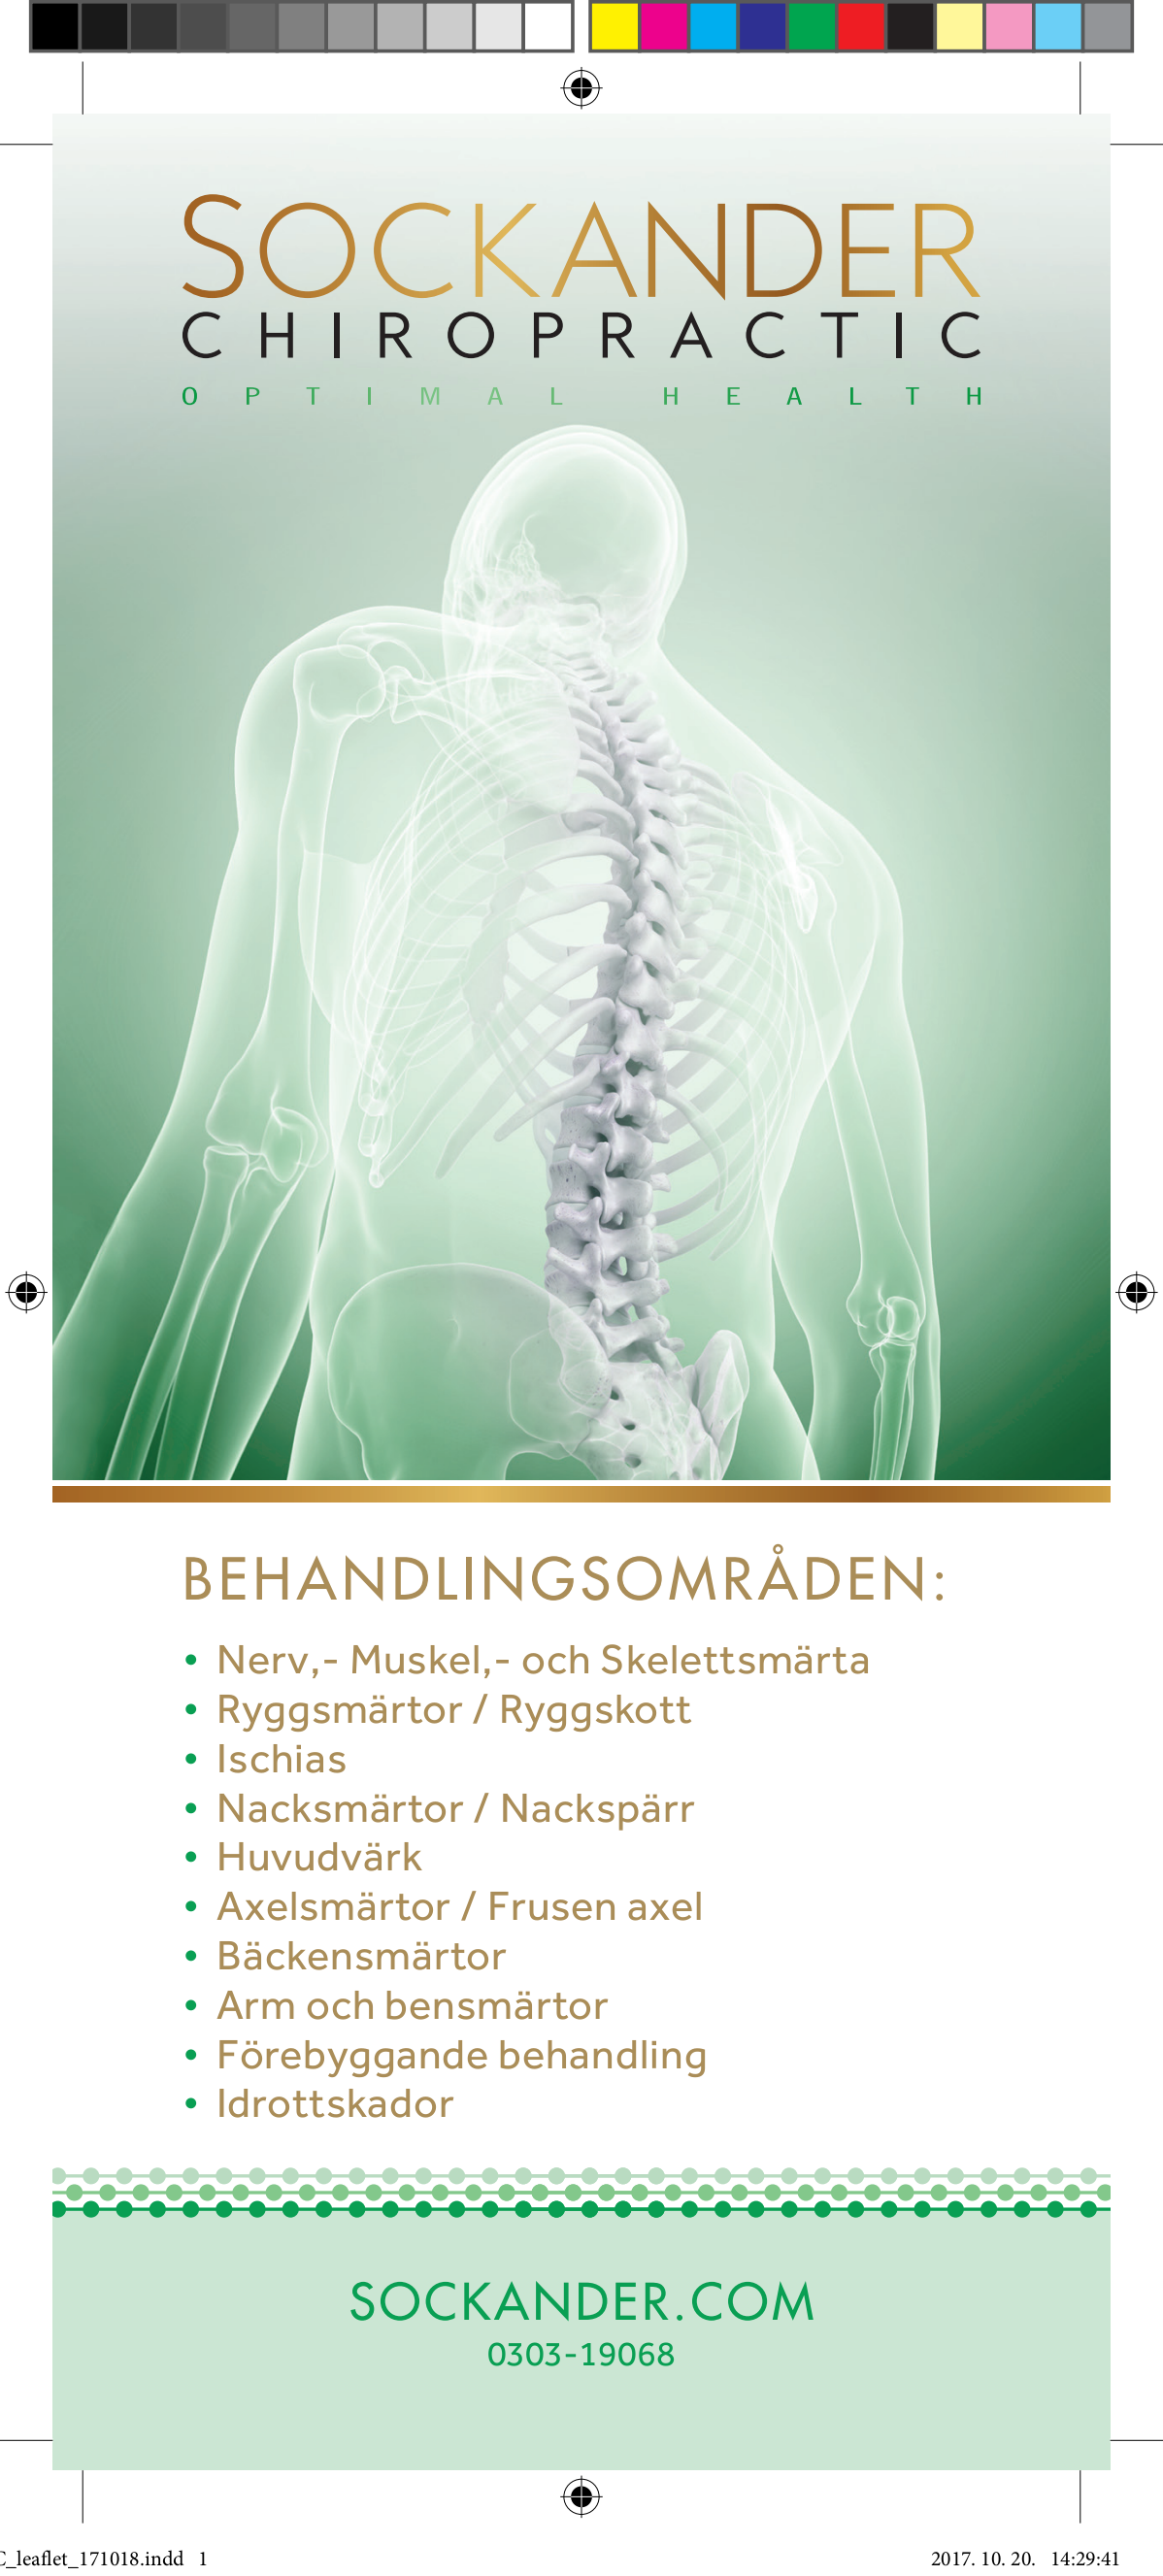 Leaflet - Chiropractic clinic